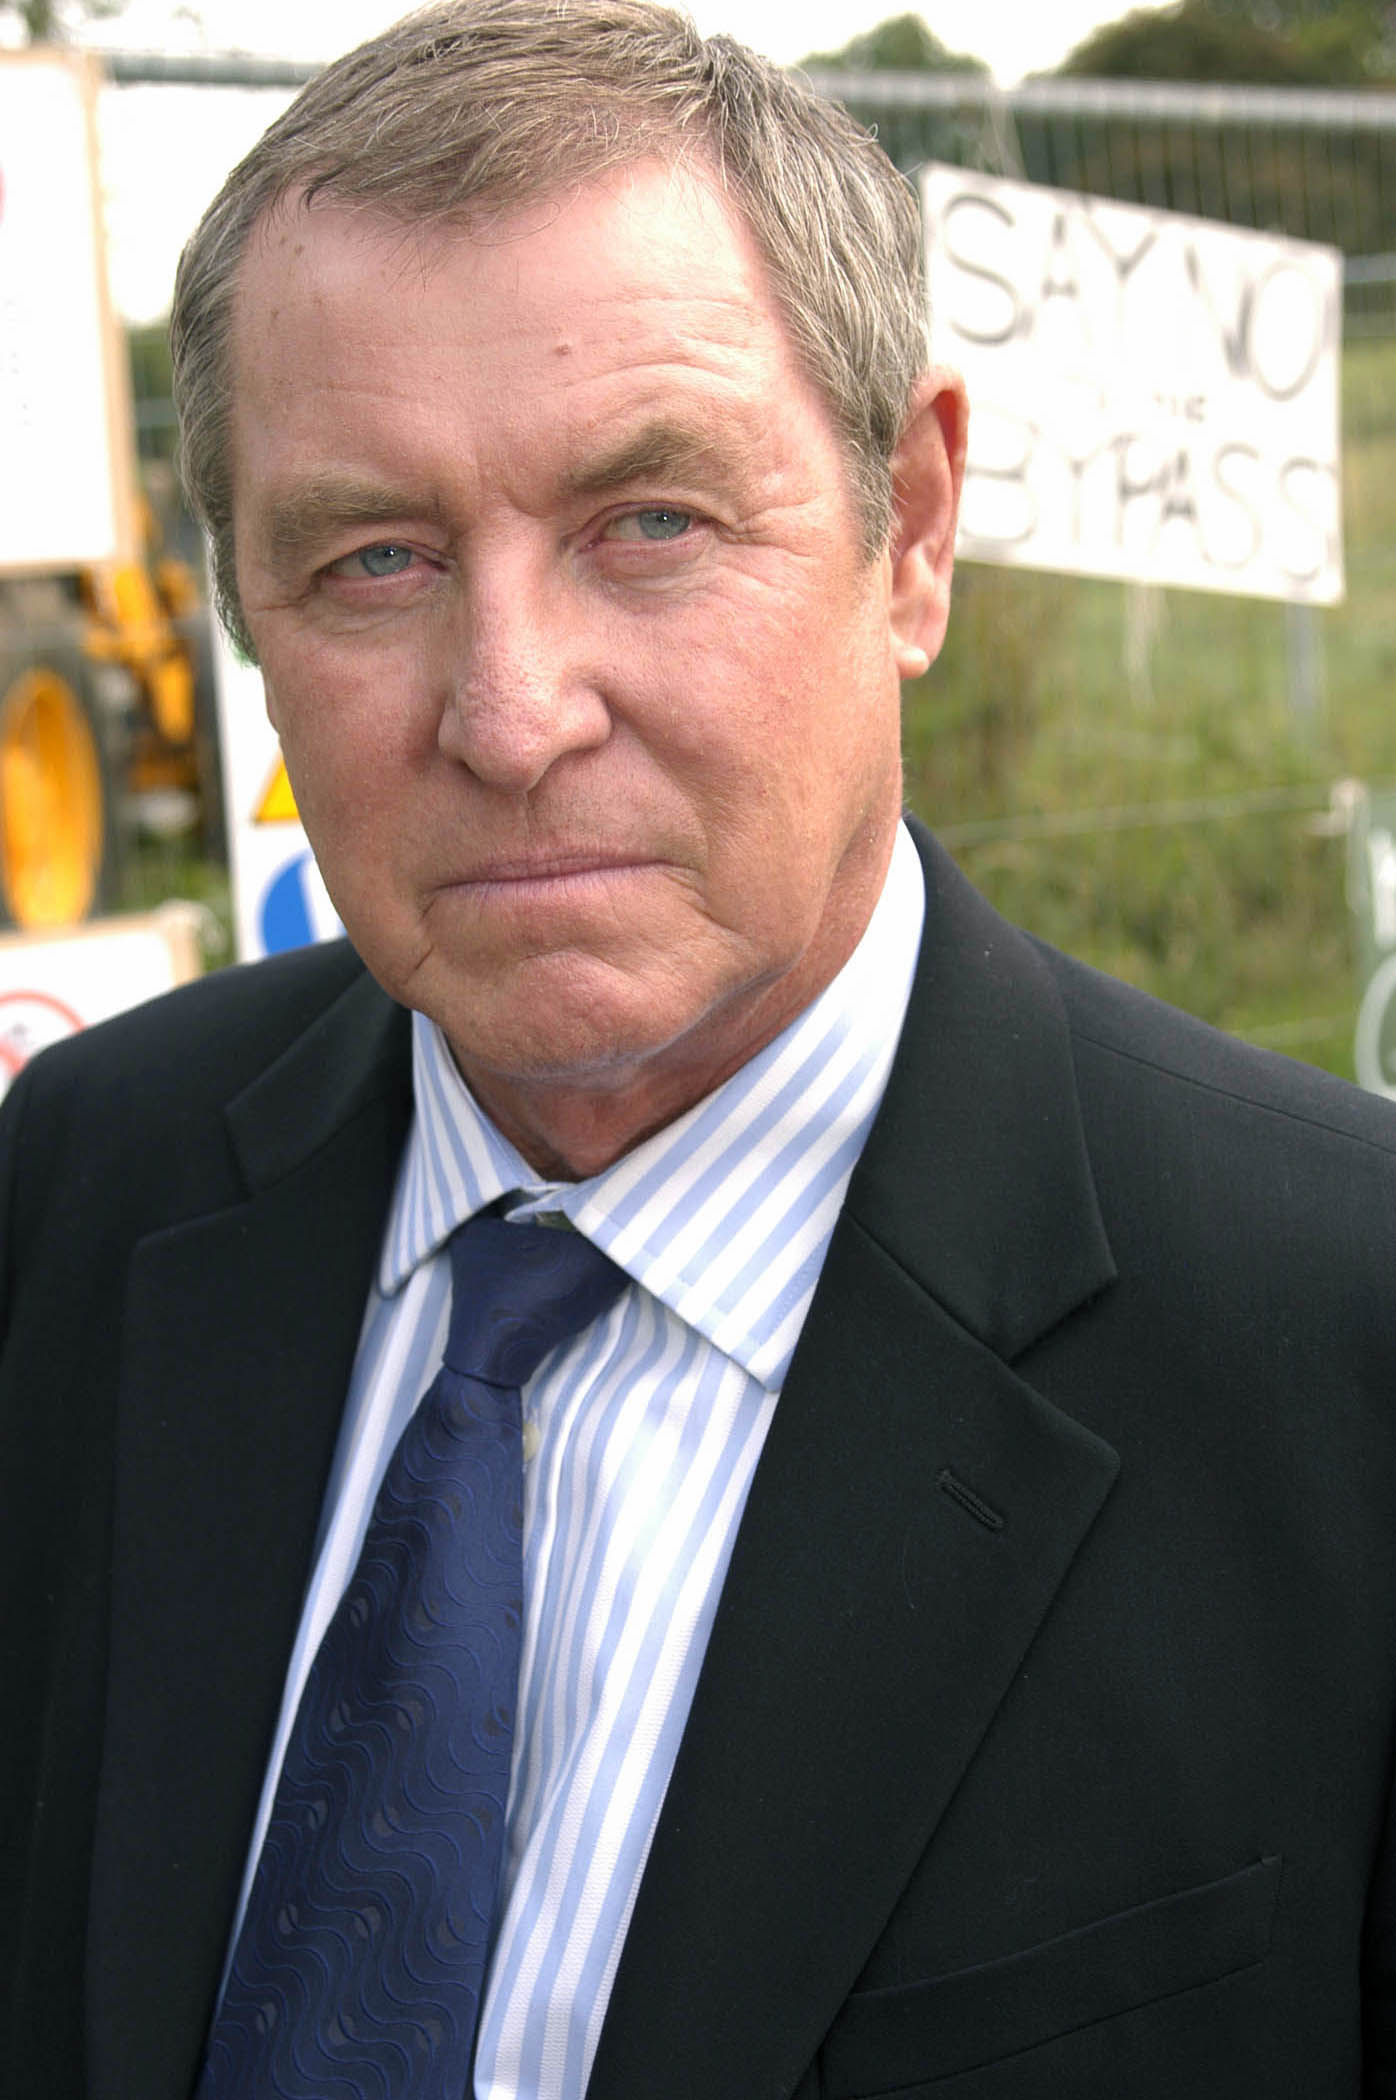 Midsomer Murders boss suspended in race row